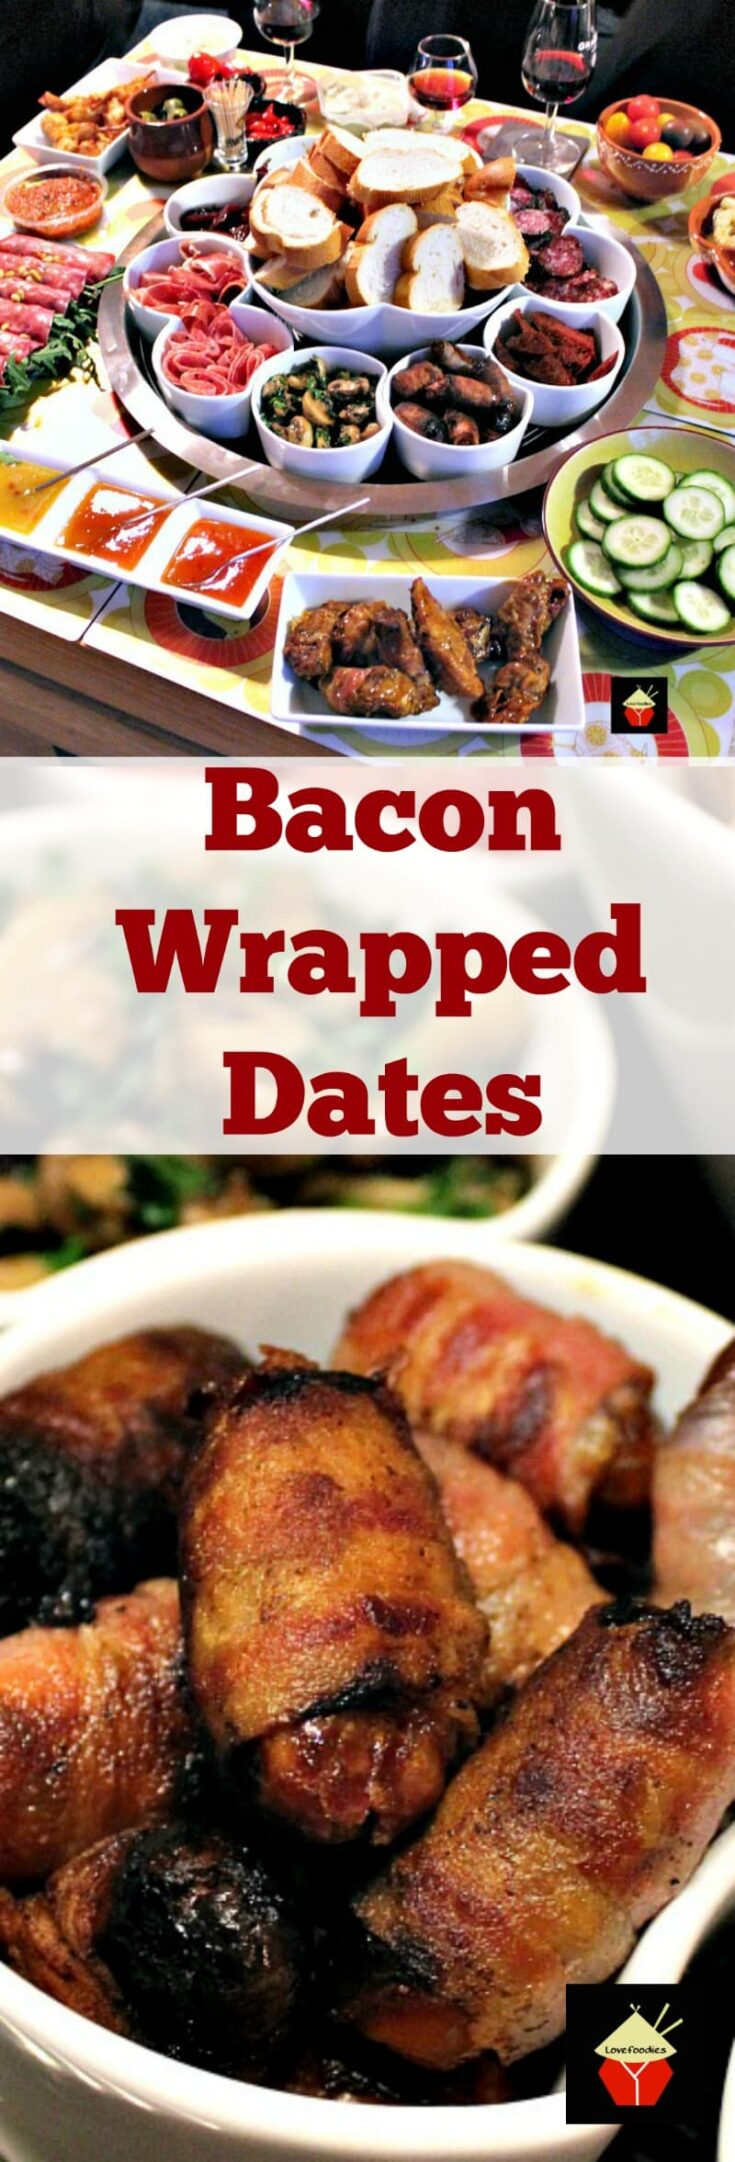 Bacon Wrapped Dates PTL